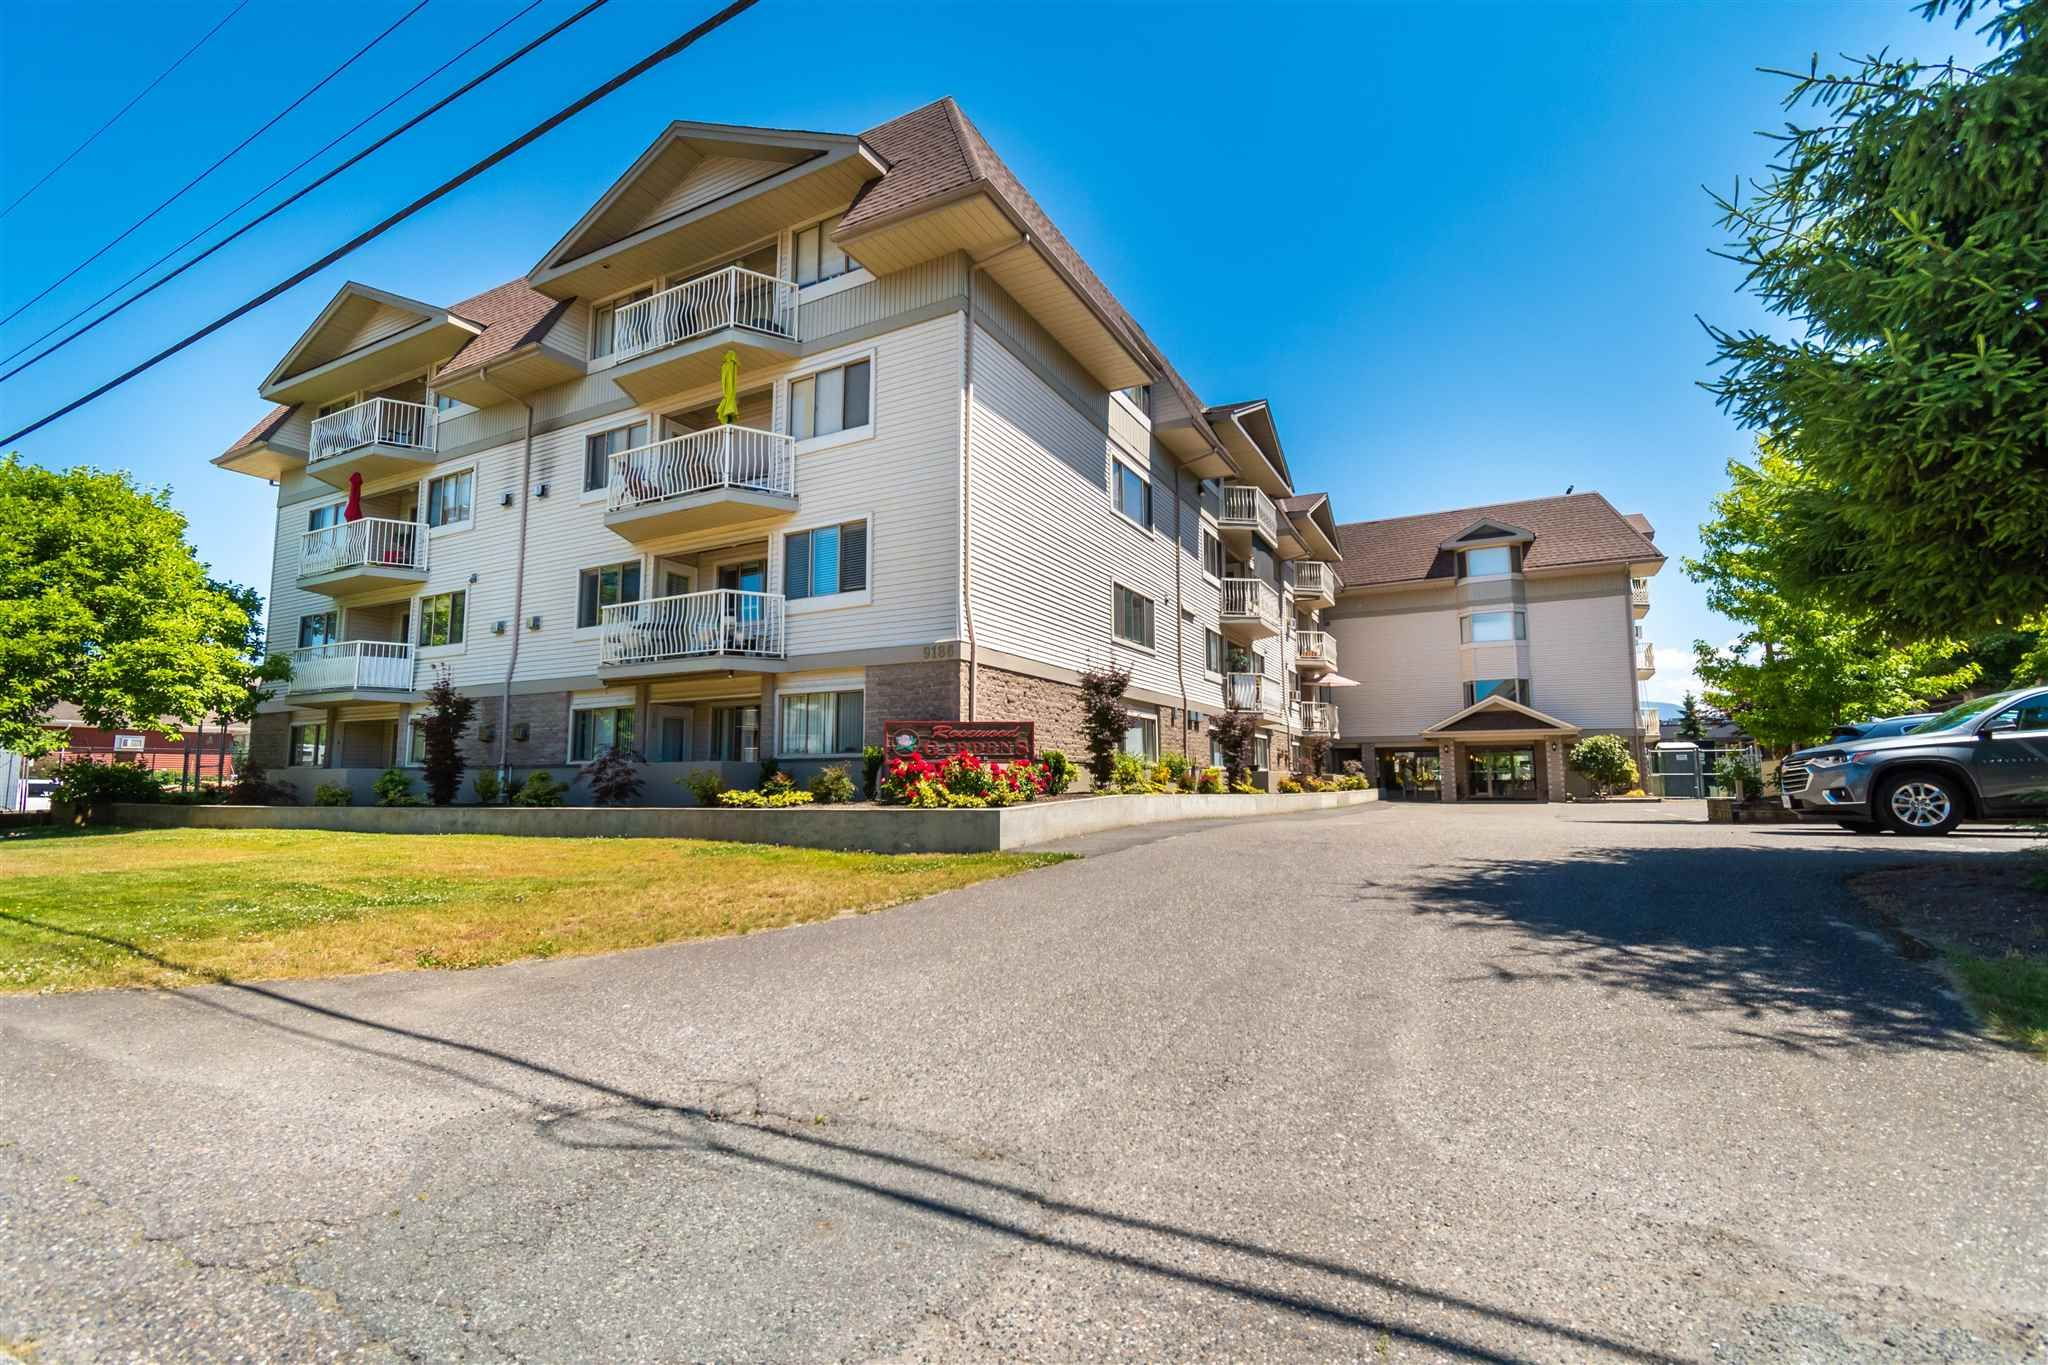 """Main Photo: 103 9186 EDWARD Street in Chilliwack: Chilliwack W Young-Well Condo for sale in """"Rosewood Gardens"""" : MLS®# R2595753"""